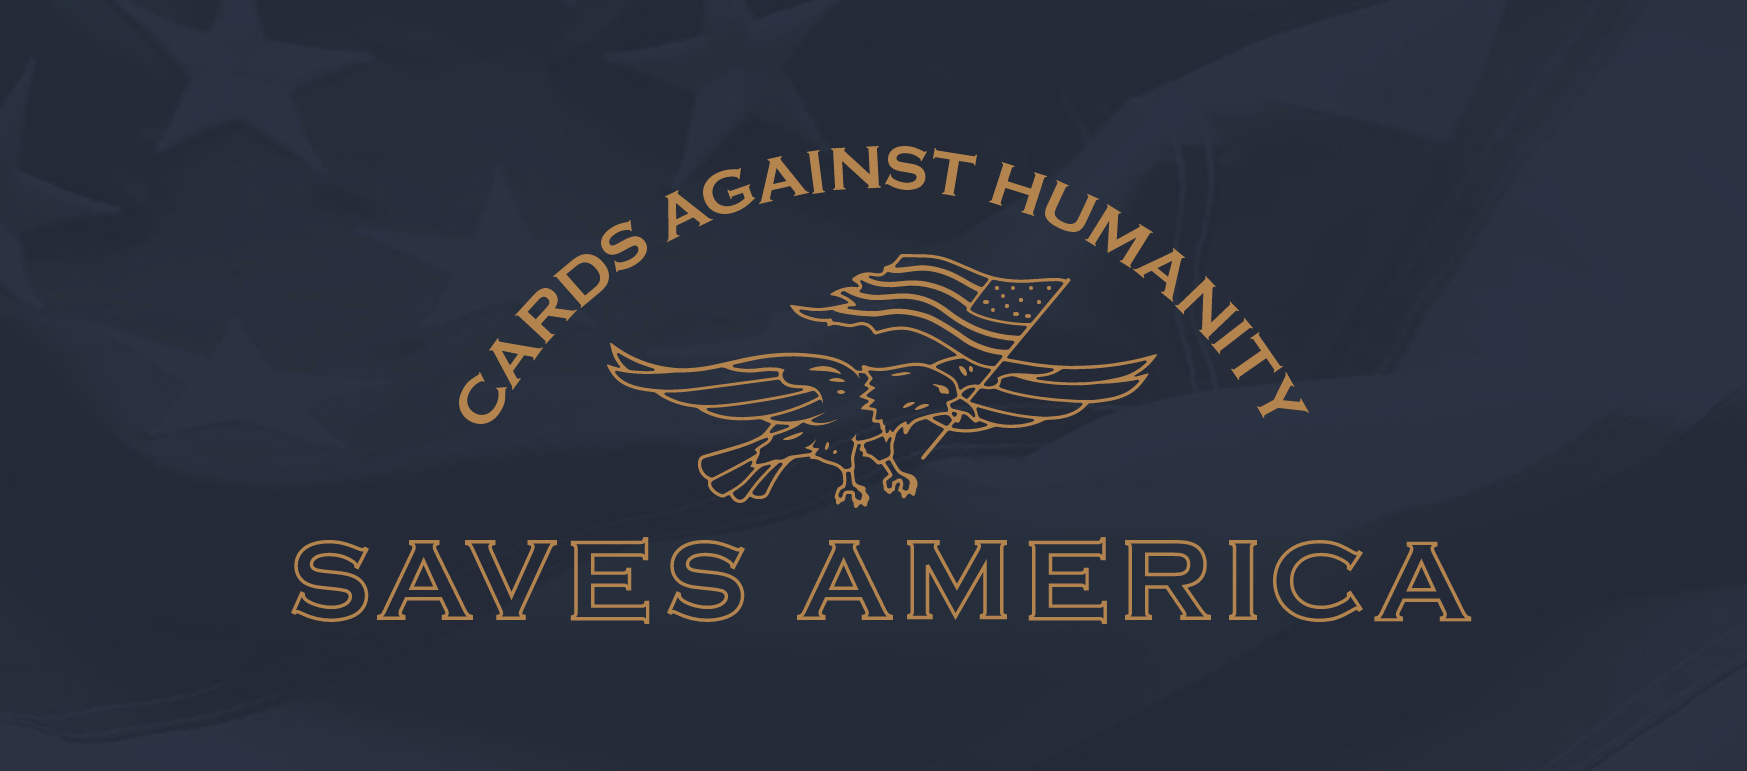 Cards Against Humanity vuole interrompere il muro tra USA e Messico